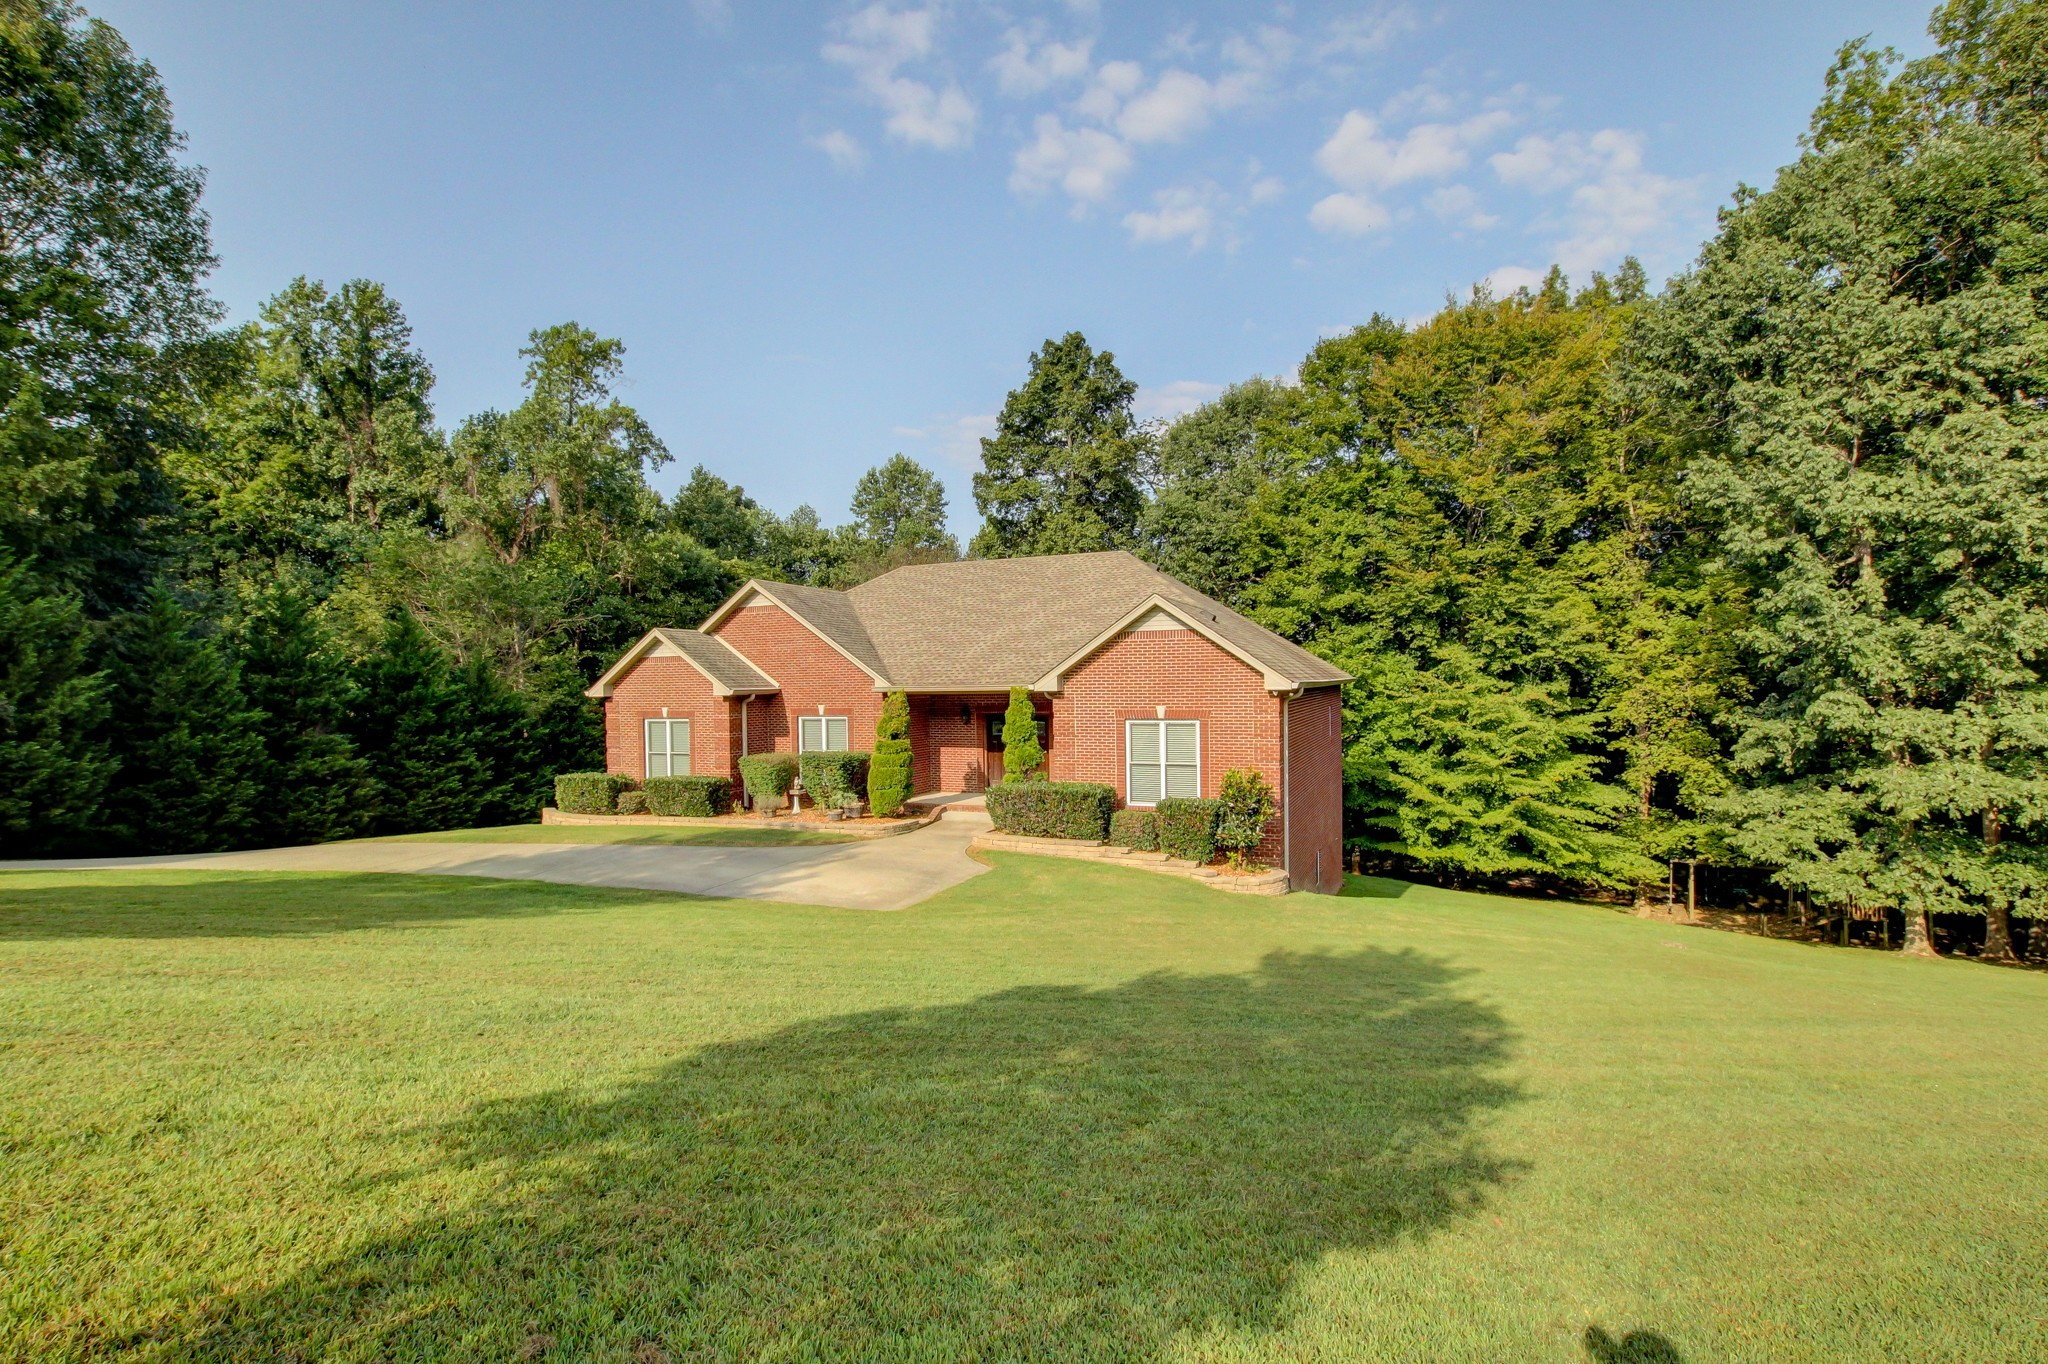 3111 Nicole Rd Property Photo - Clarksville, TN real estate listing